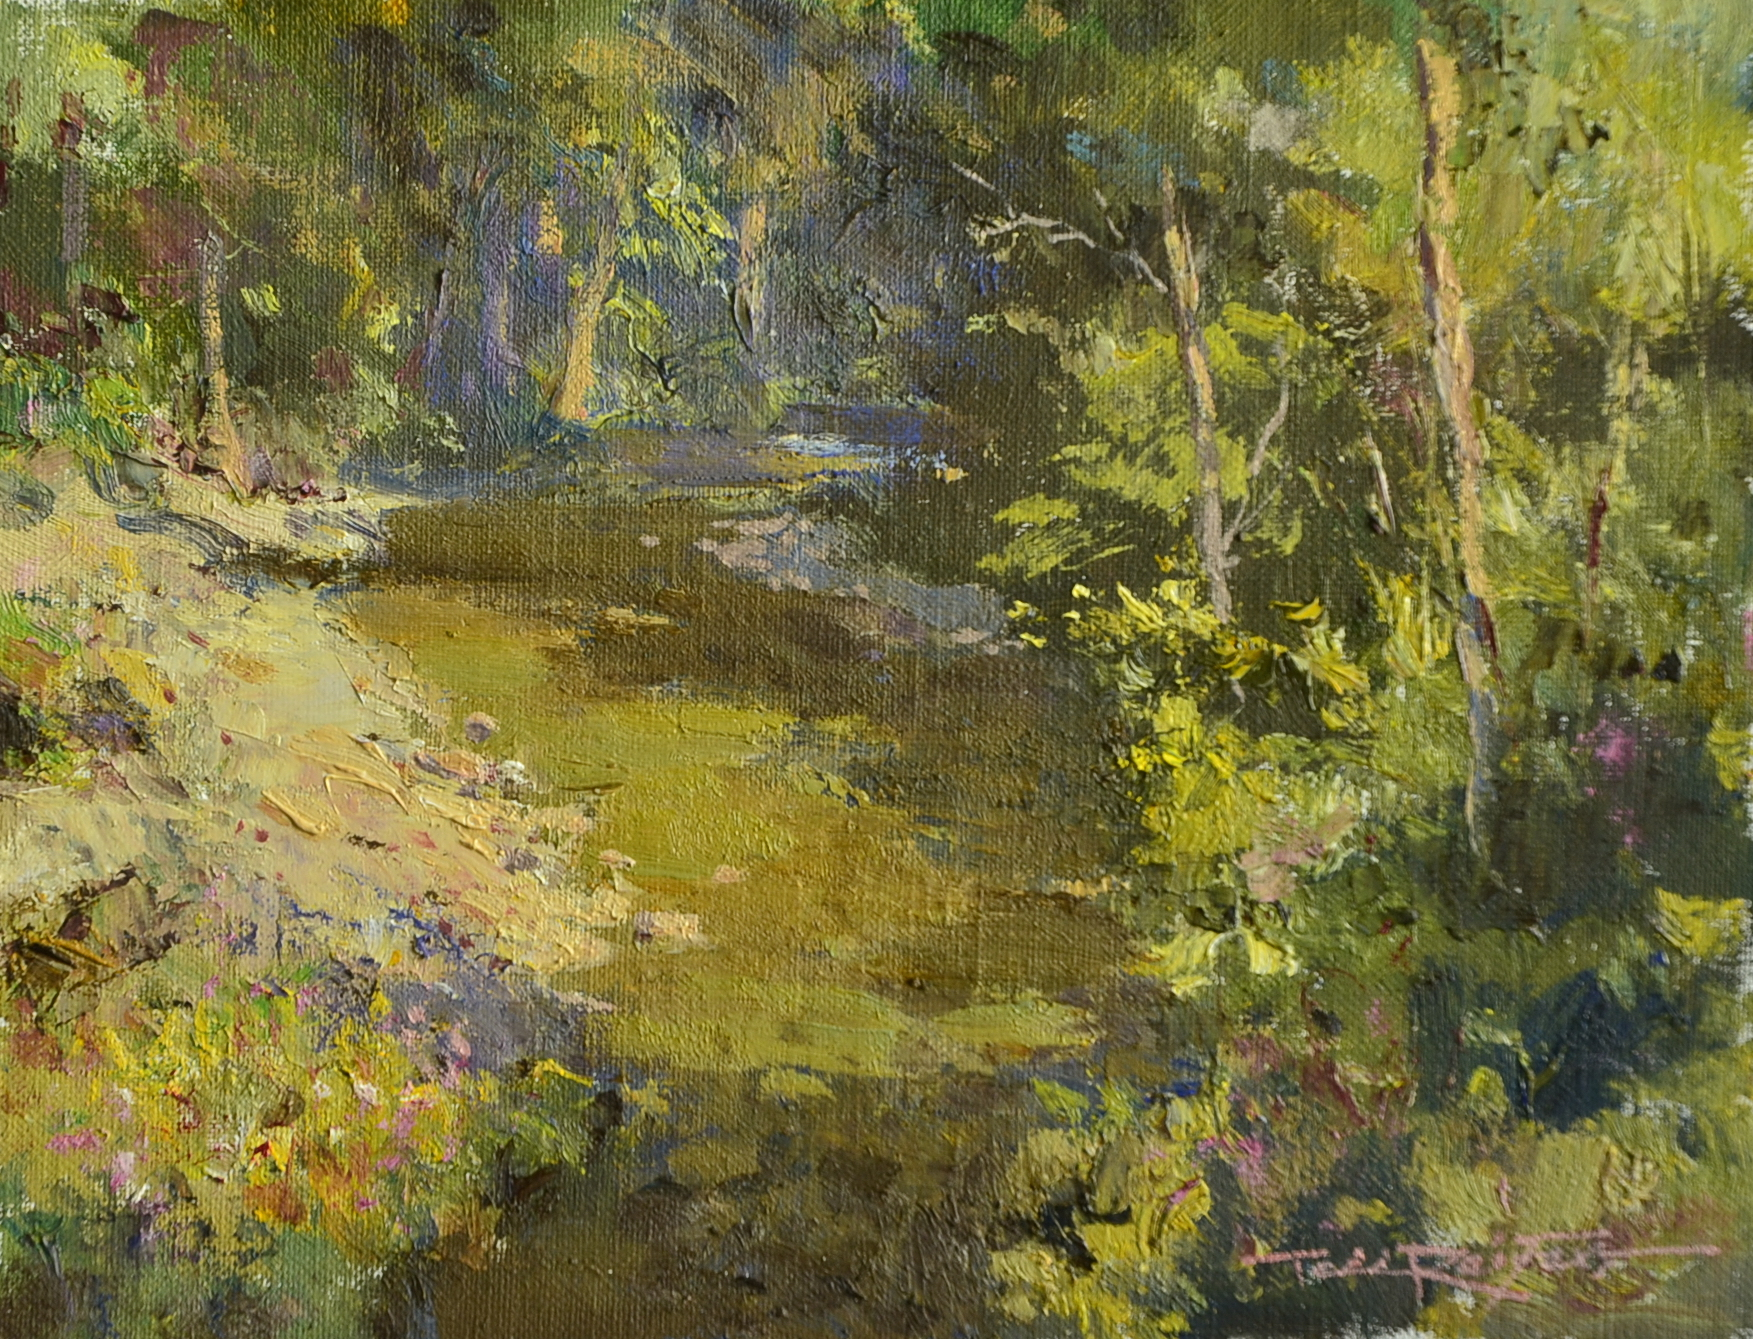 reifers-lightonthestreambed-cropped